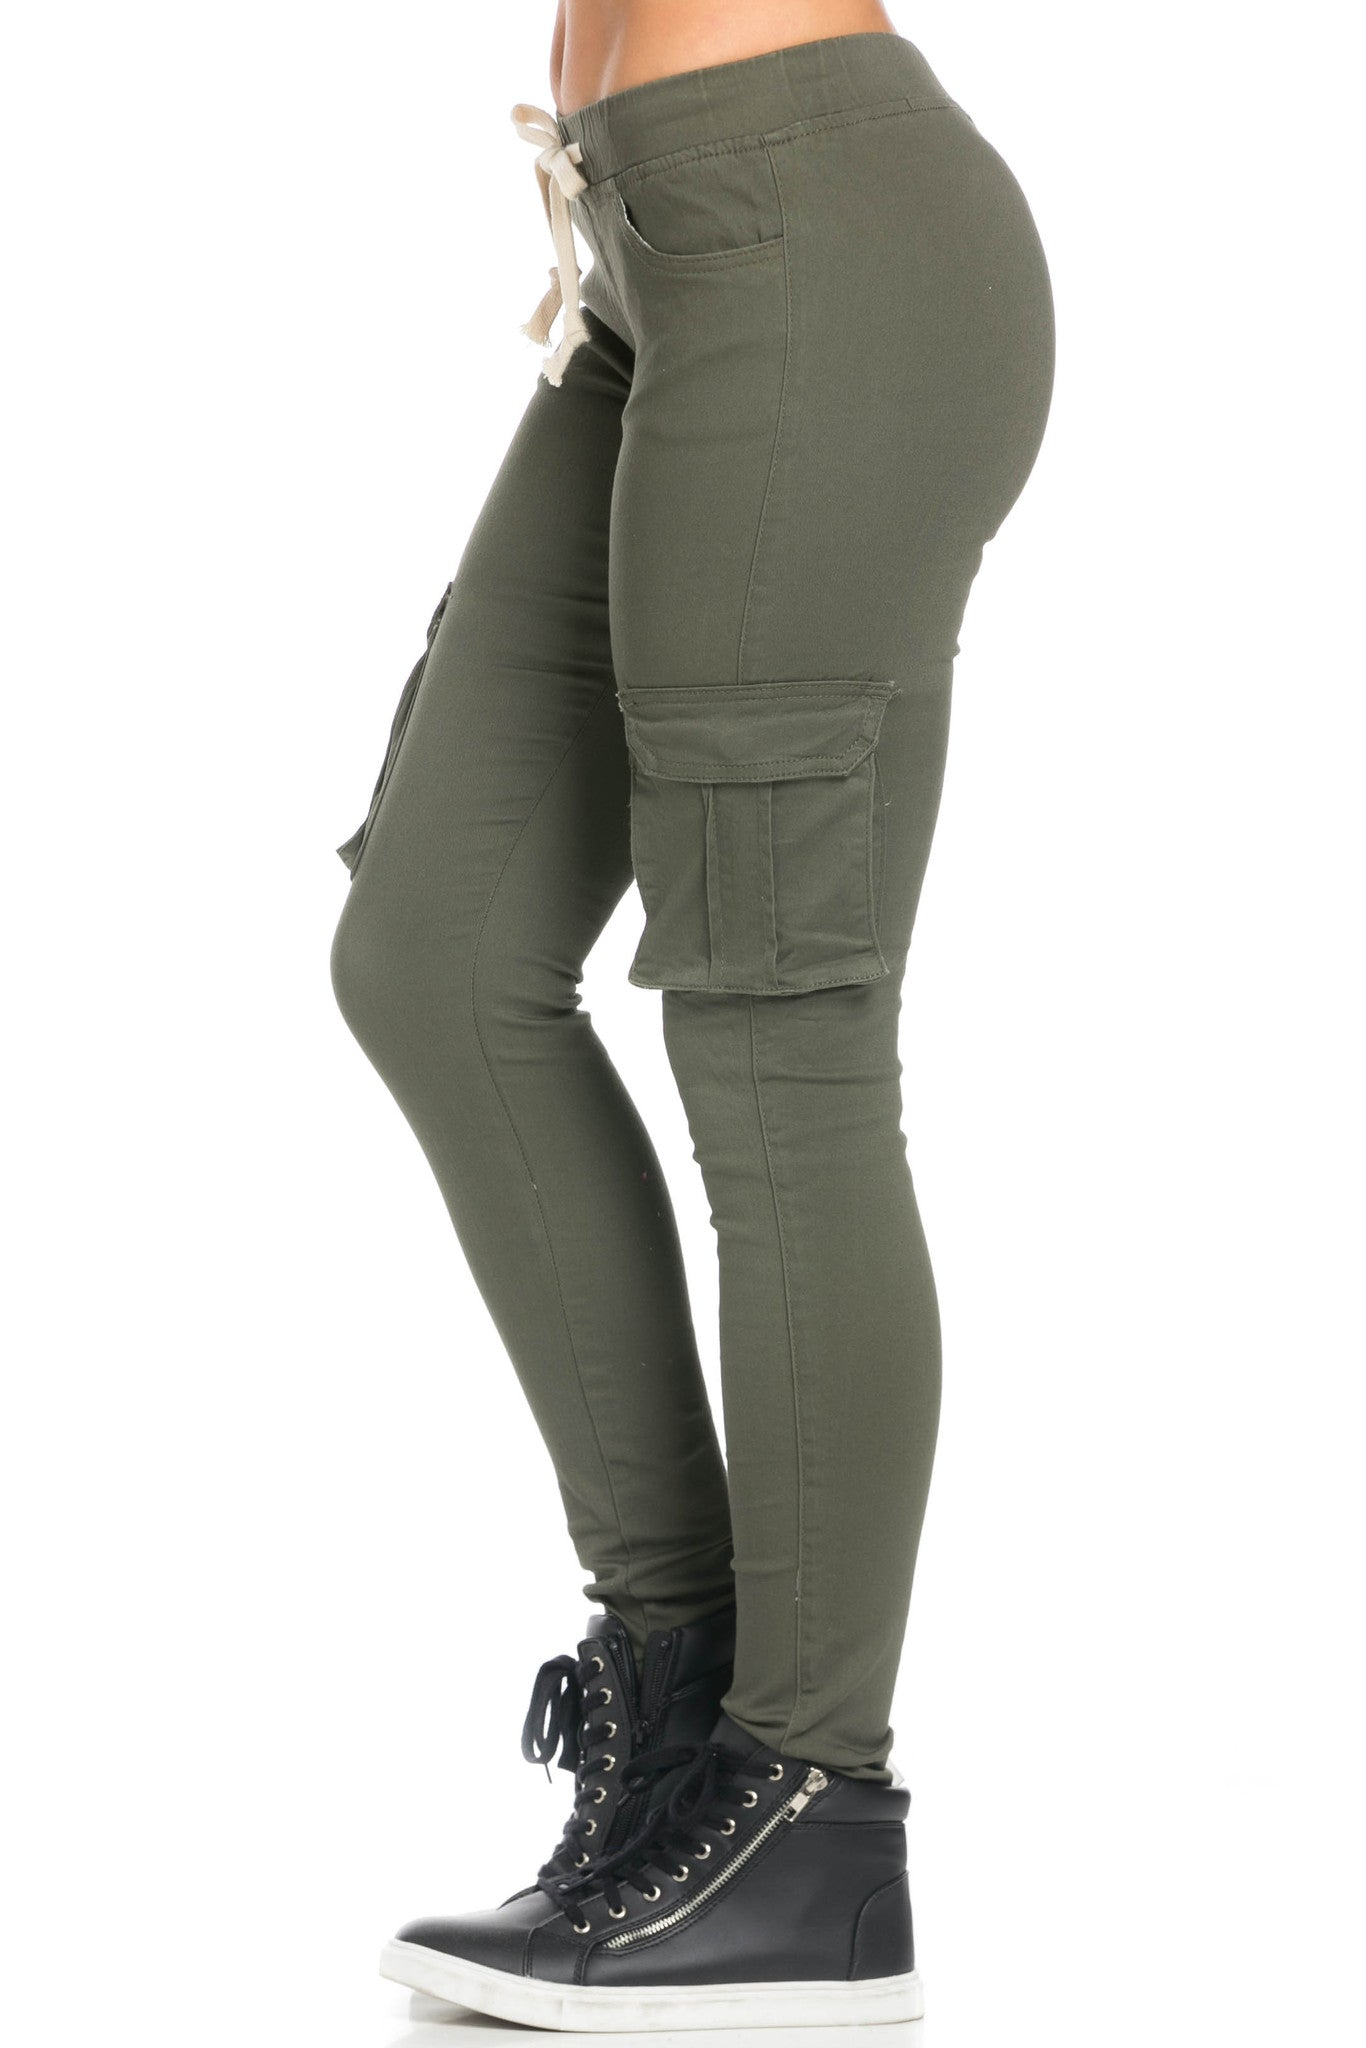 Mid Rise Skinny Olive Cargo Pants - Pants - My Yuccie - 3